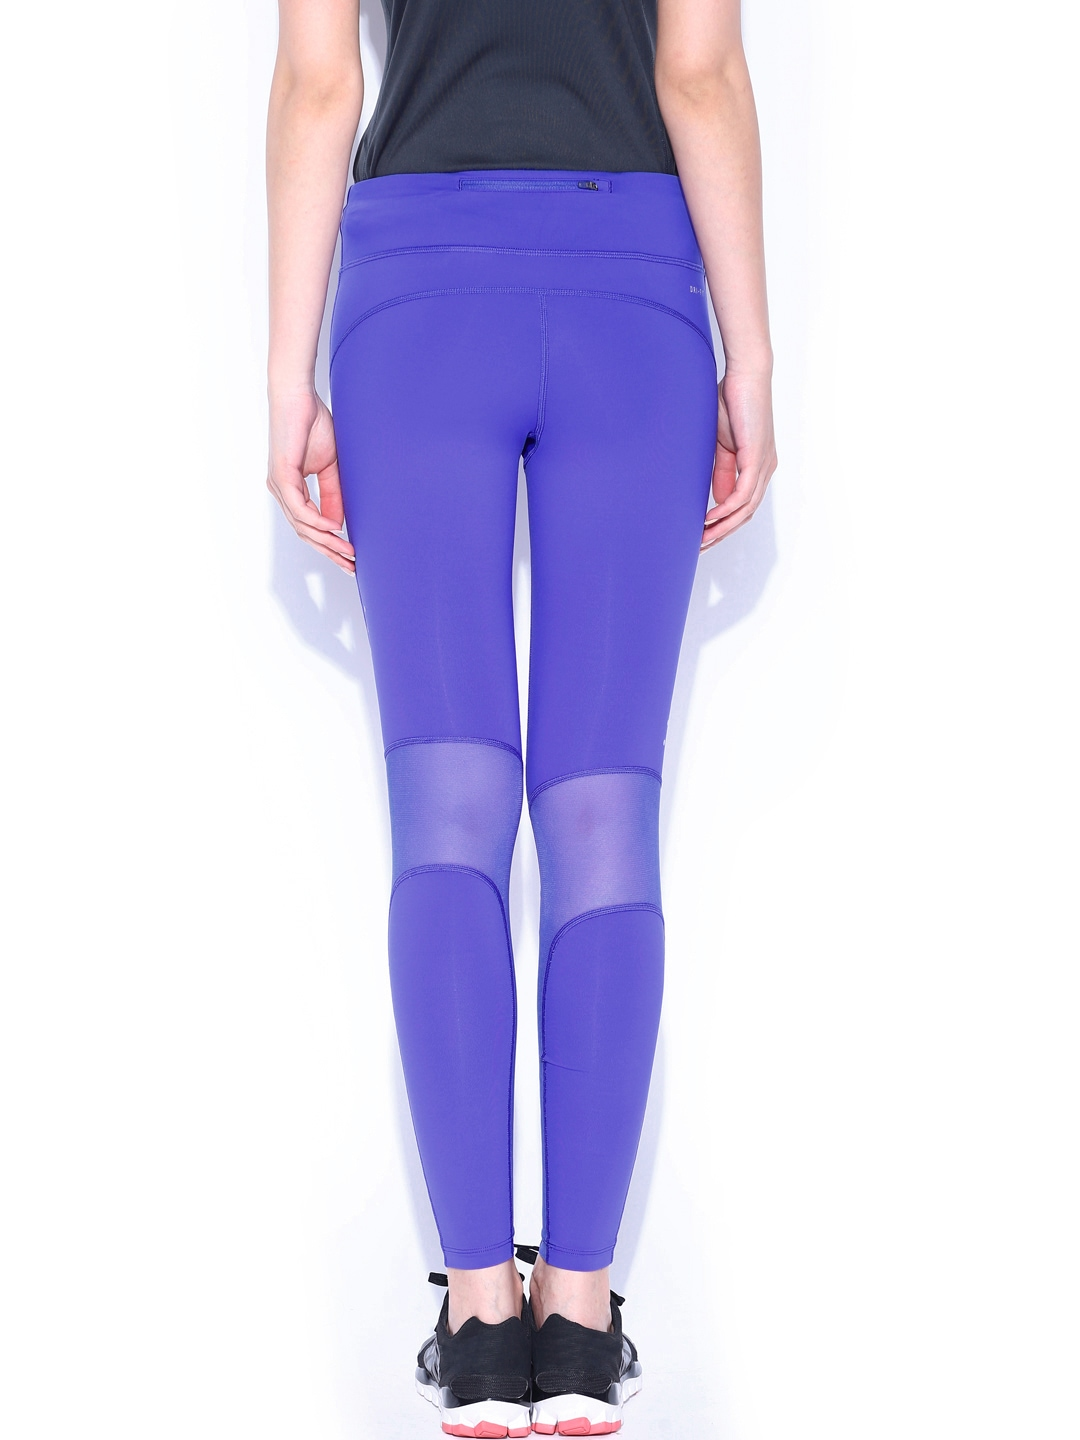 Black and purple running pants for more than 50 years, the north face has made activewear and outdoor sports gear that exceeds black and purple running pants magista obra 2 .